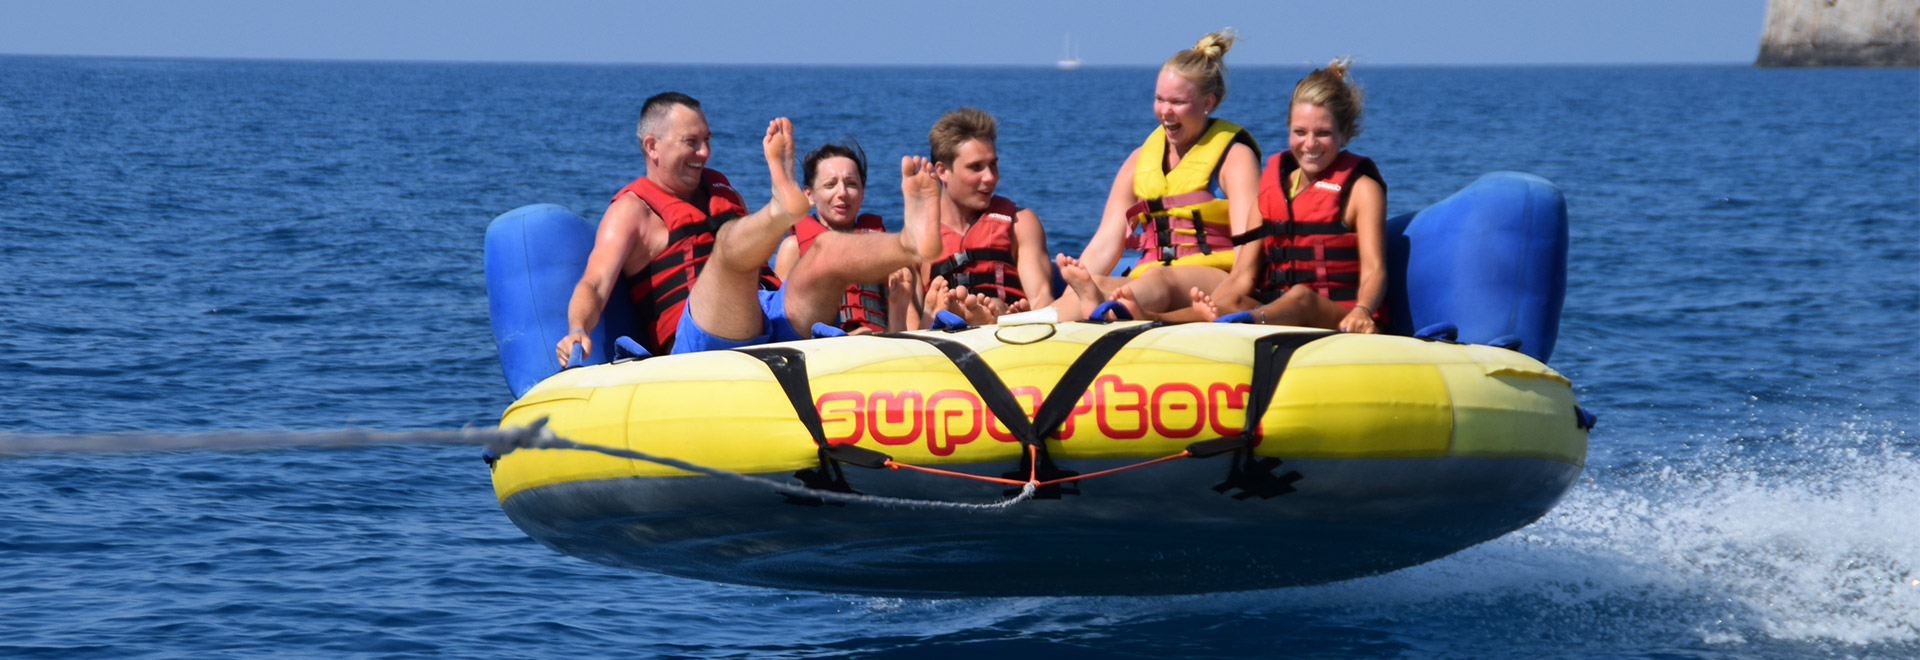 crazy sofa ride best upholstery for pets rides platanias watersports in crete